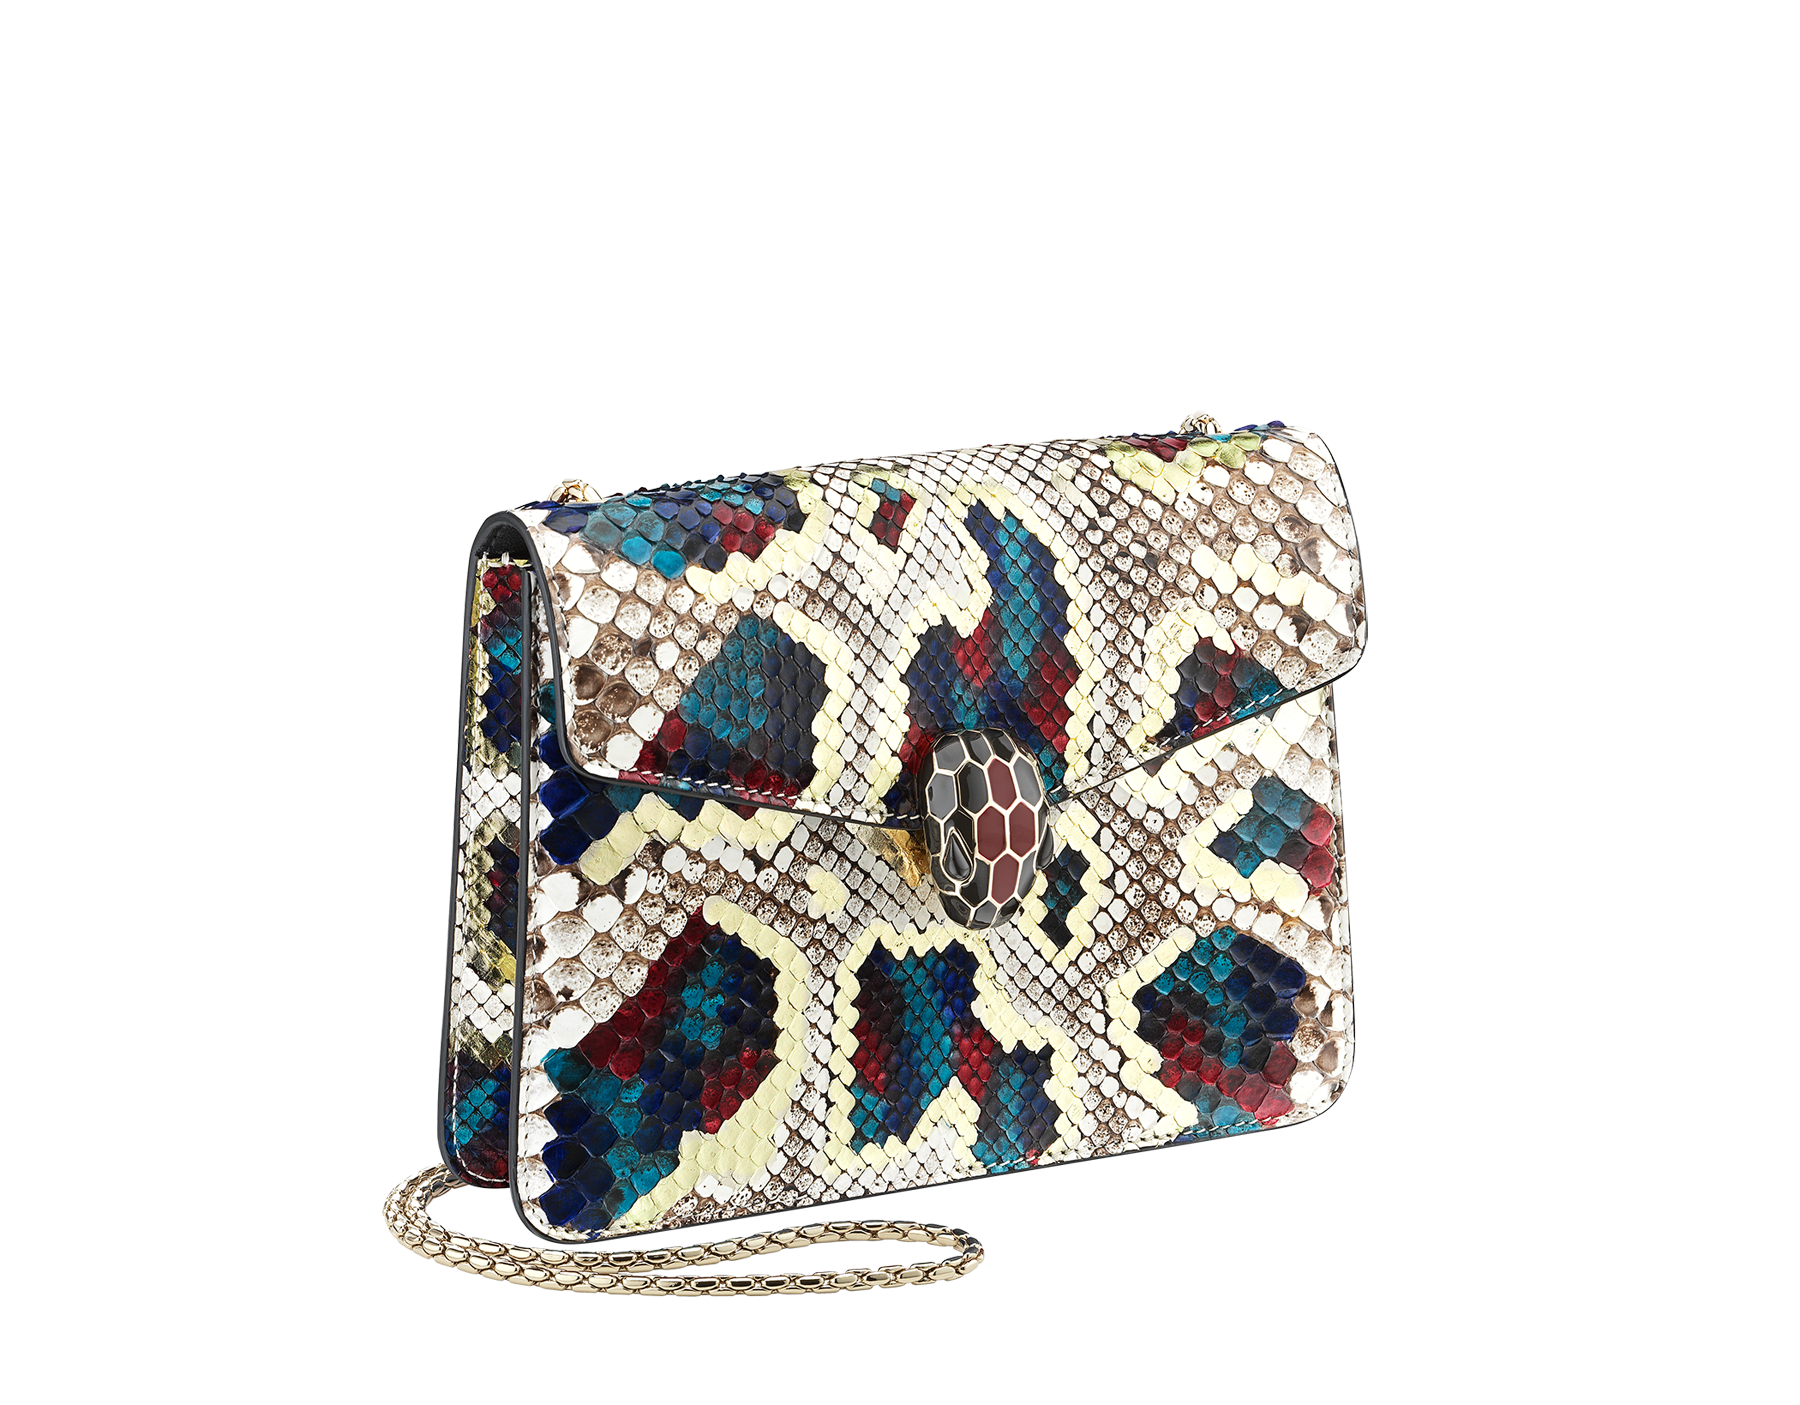 Sac à bandoulière Serpenti Forever en python « Magic Chromaline » multicolore. Fermoir emblématique Serpenti en laiton doré et émail noir et blanc avec yeux en onyx. 422-Pc image 2